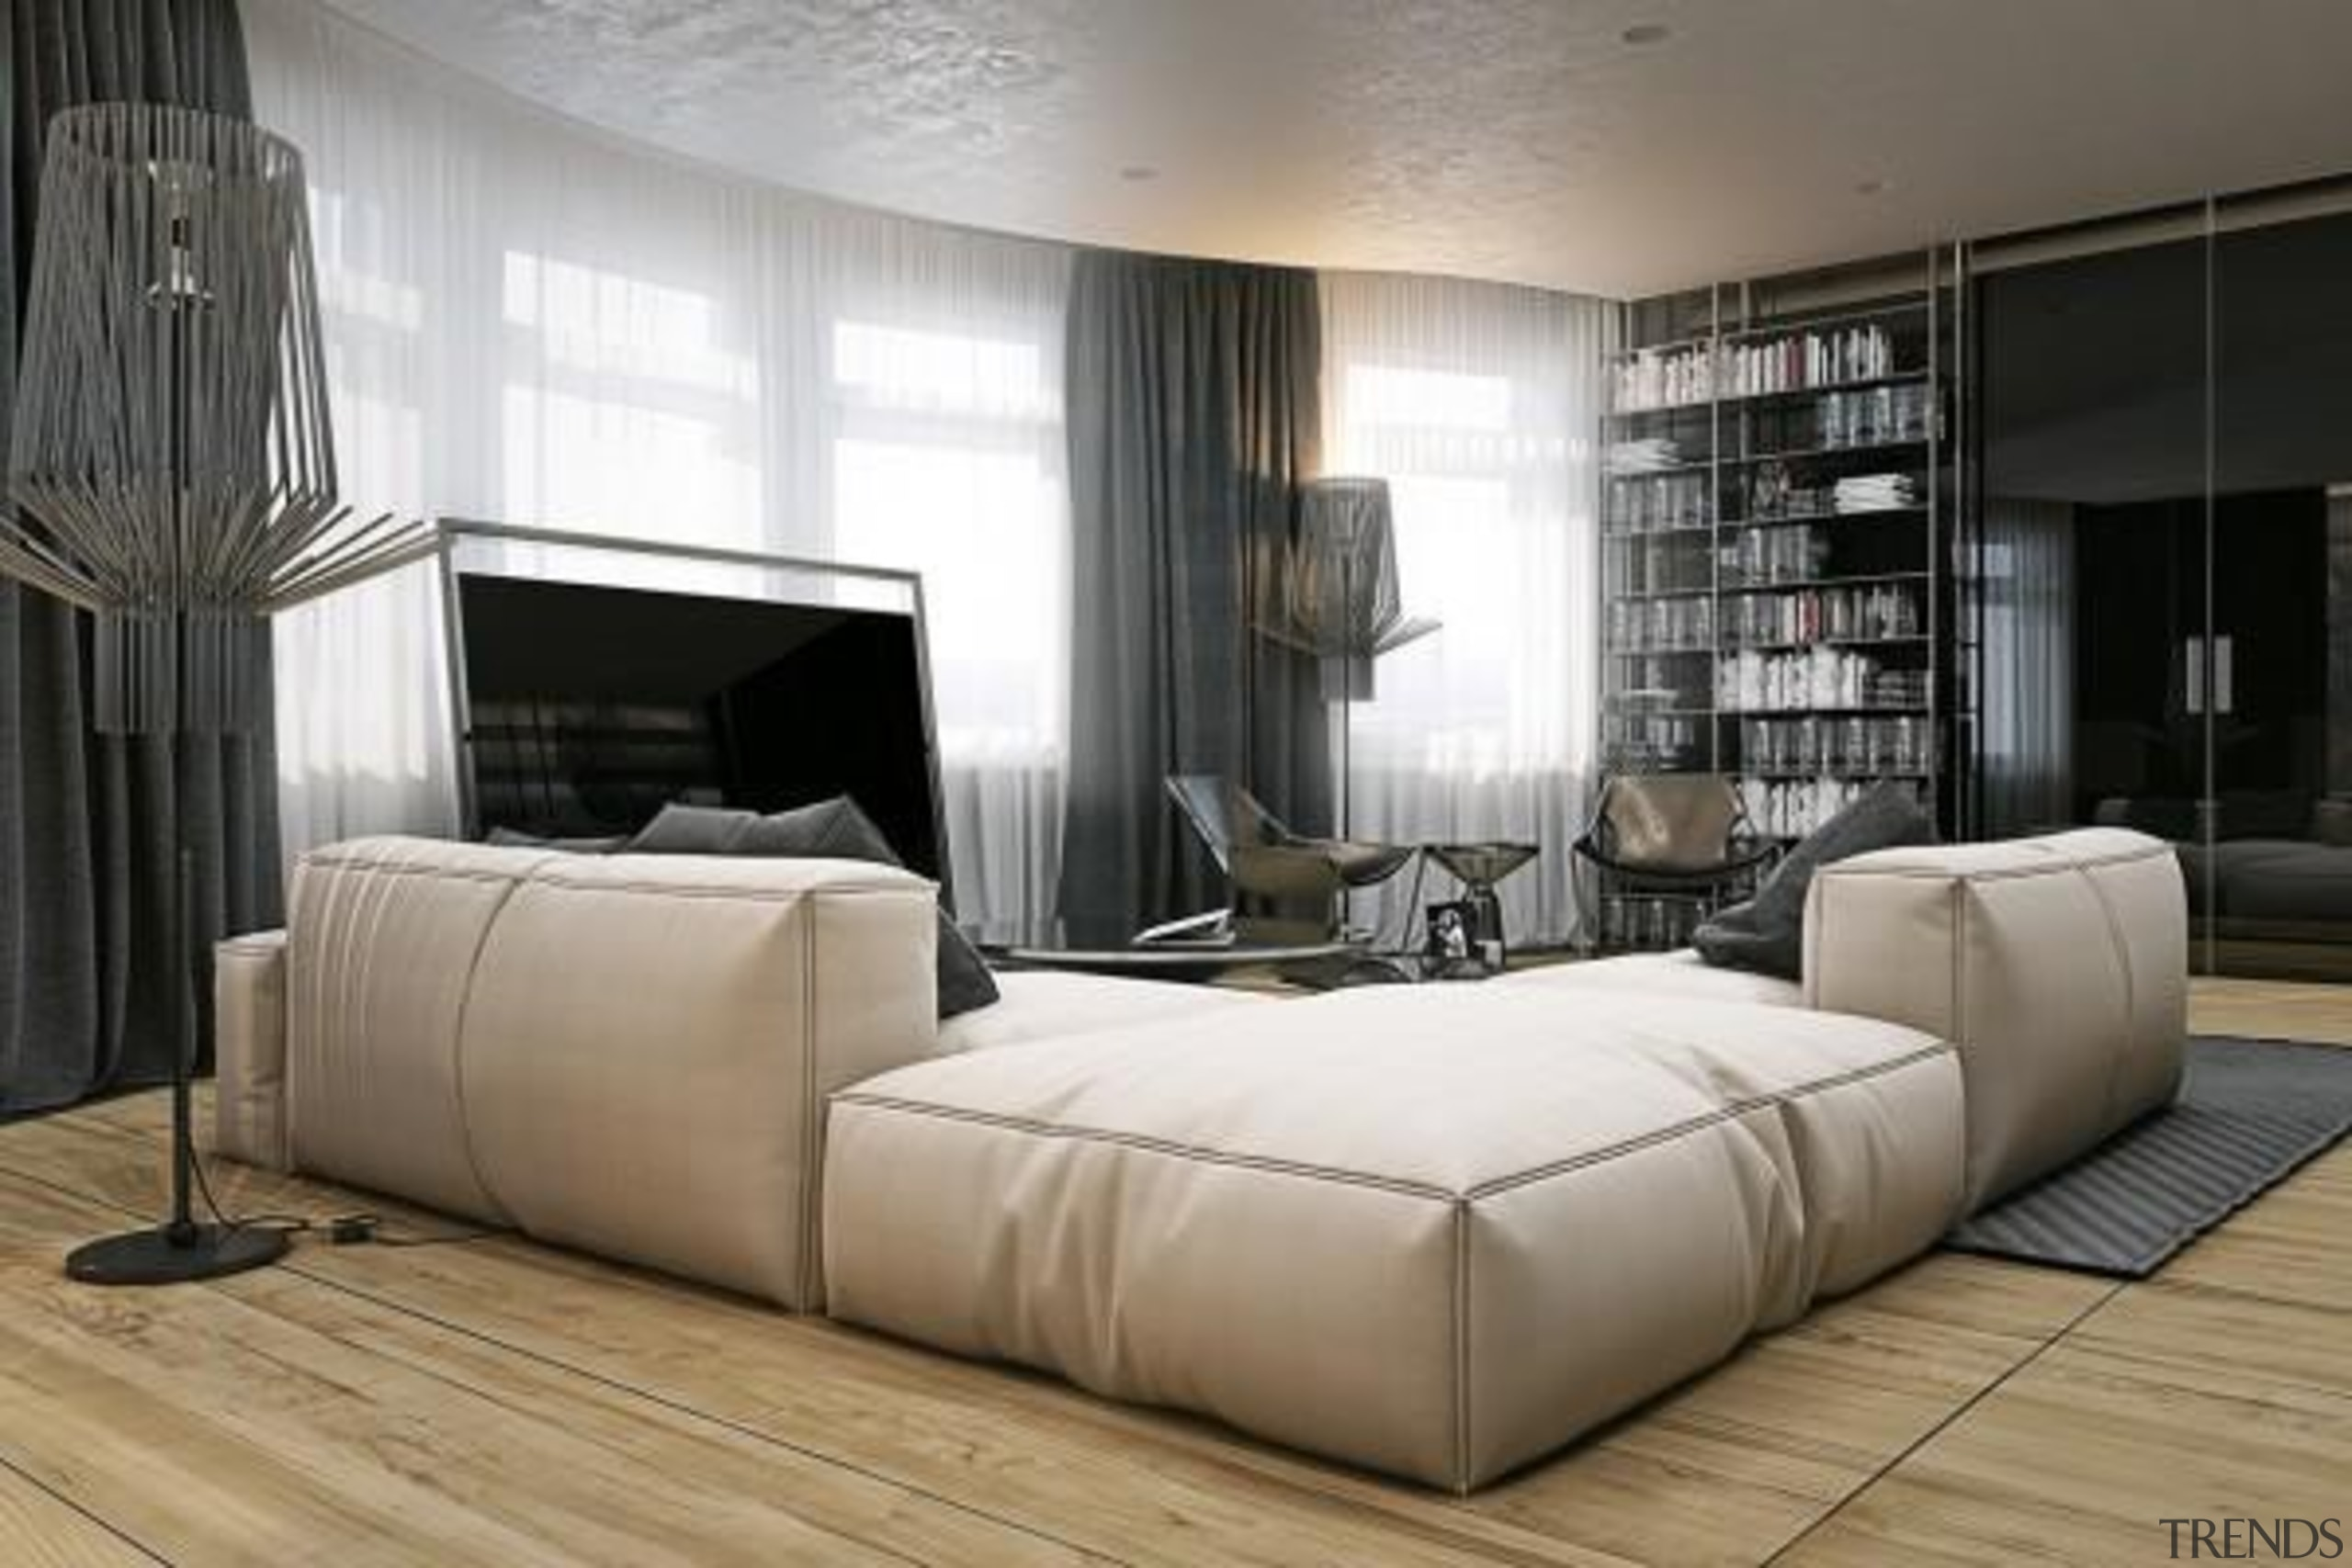 gauzy curtains - Masculine Apartments - bed | bed, bed frame, couch, floor, furniture, interior design, living room, room, wall, white